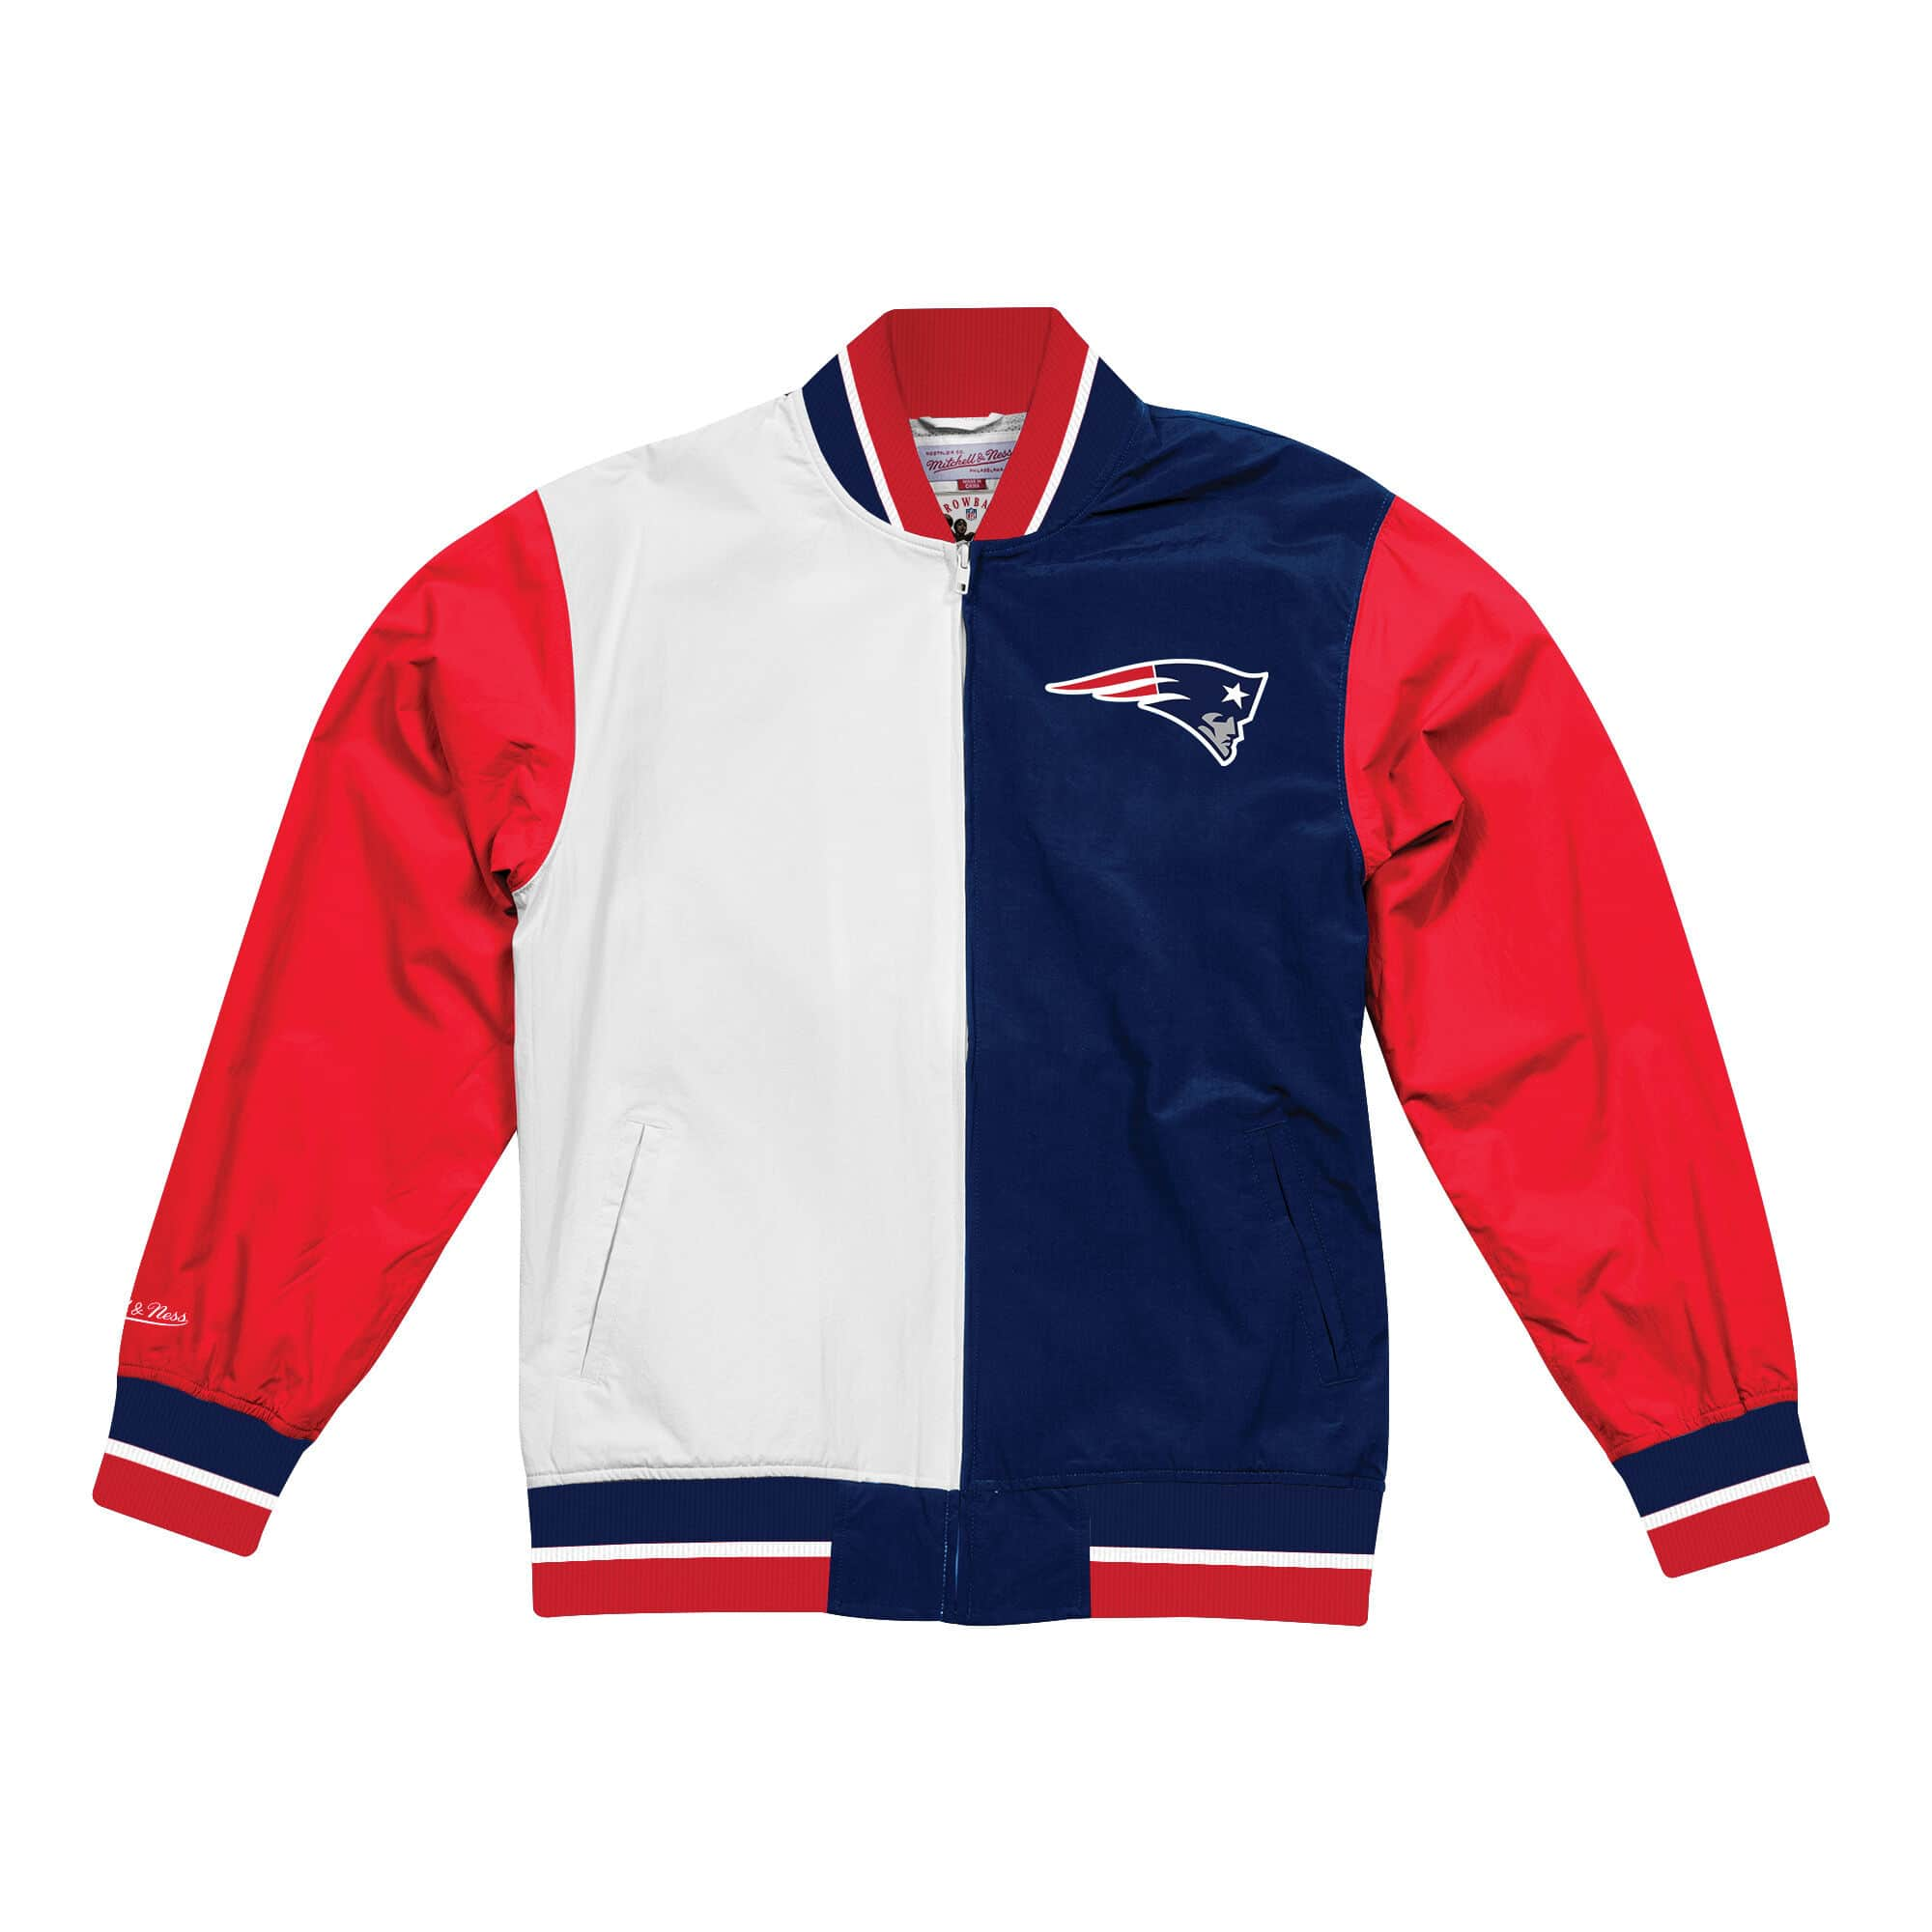 Team History Warm Up Jacket 2.0 New England Patriots